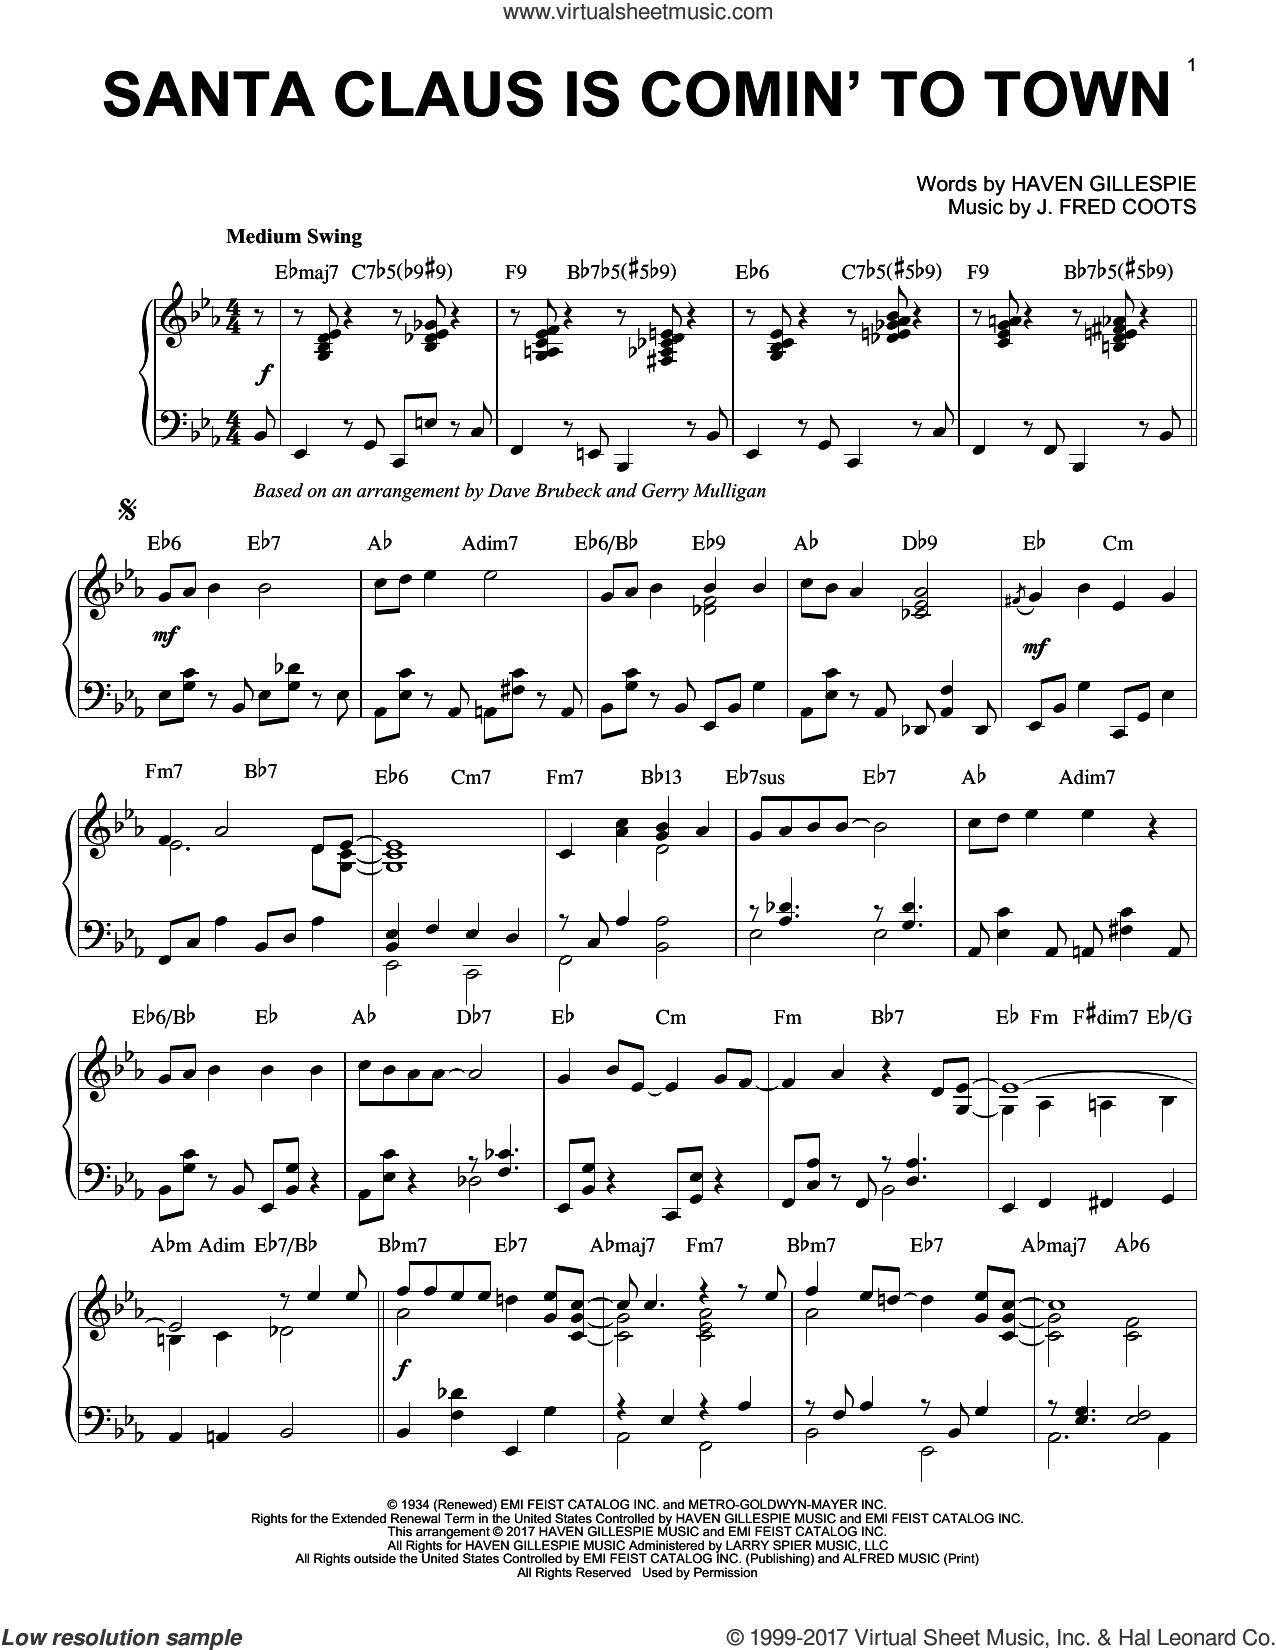 Santa Claus Is Comin' To Town [Jazz version] sheet music for piano solo by Dave Brubeck and J. Fred Coots, intermediate skill level